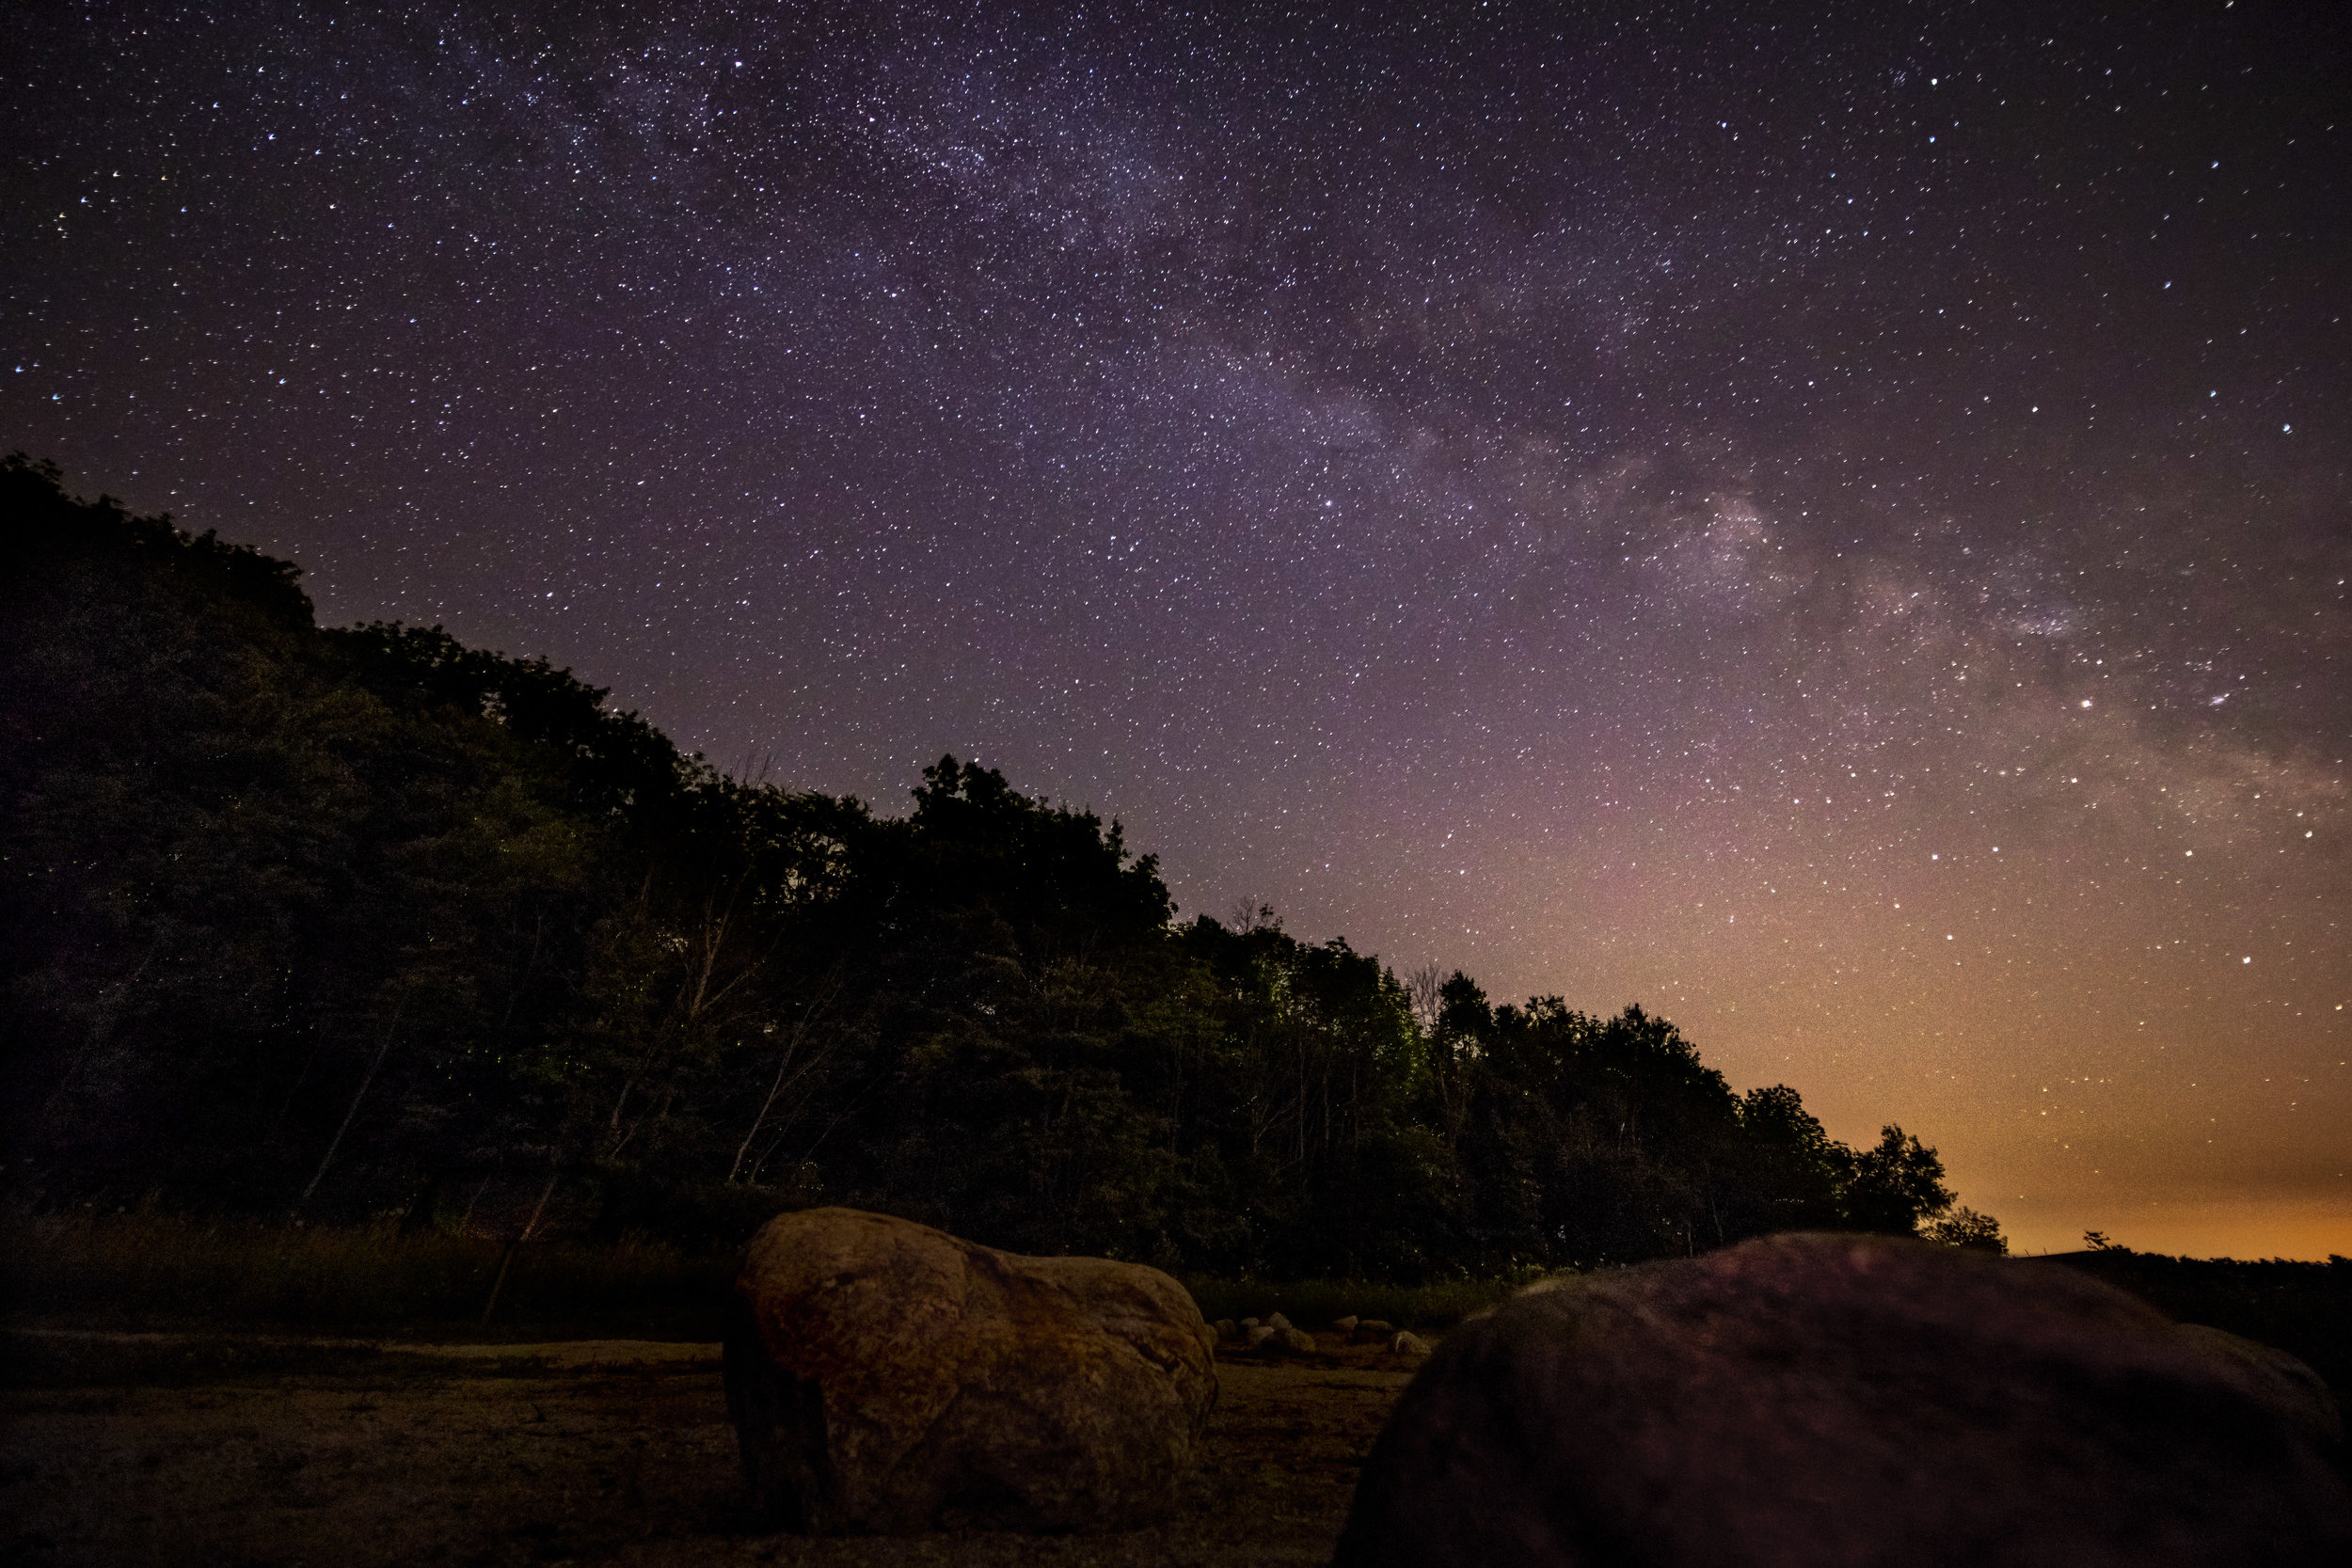 Milky Way 0713183.jpg